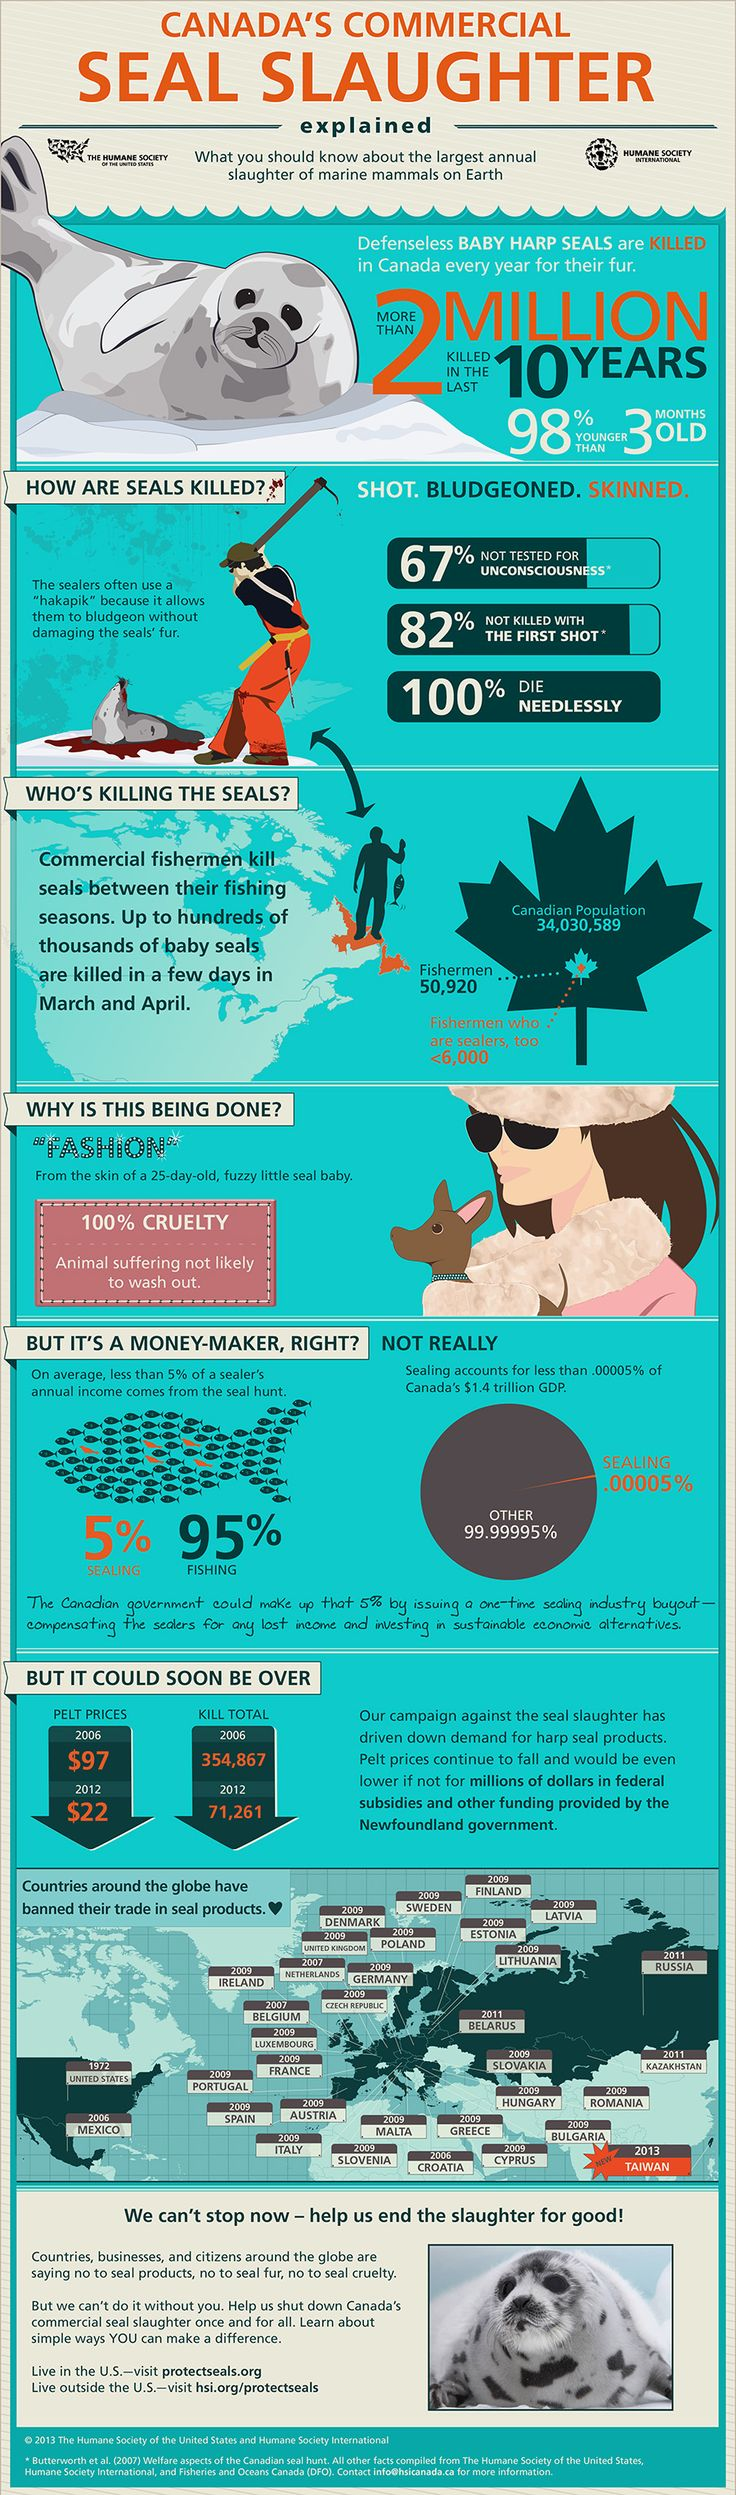 NO FUR!!! Canadas Commercial Seal Slaughter Explained [Infographic] : The Humane Society of the United States